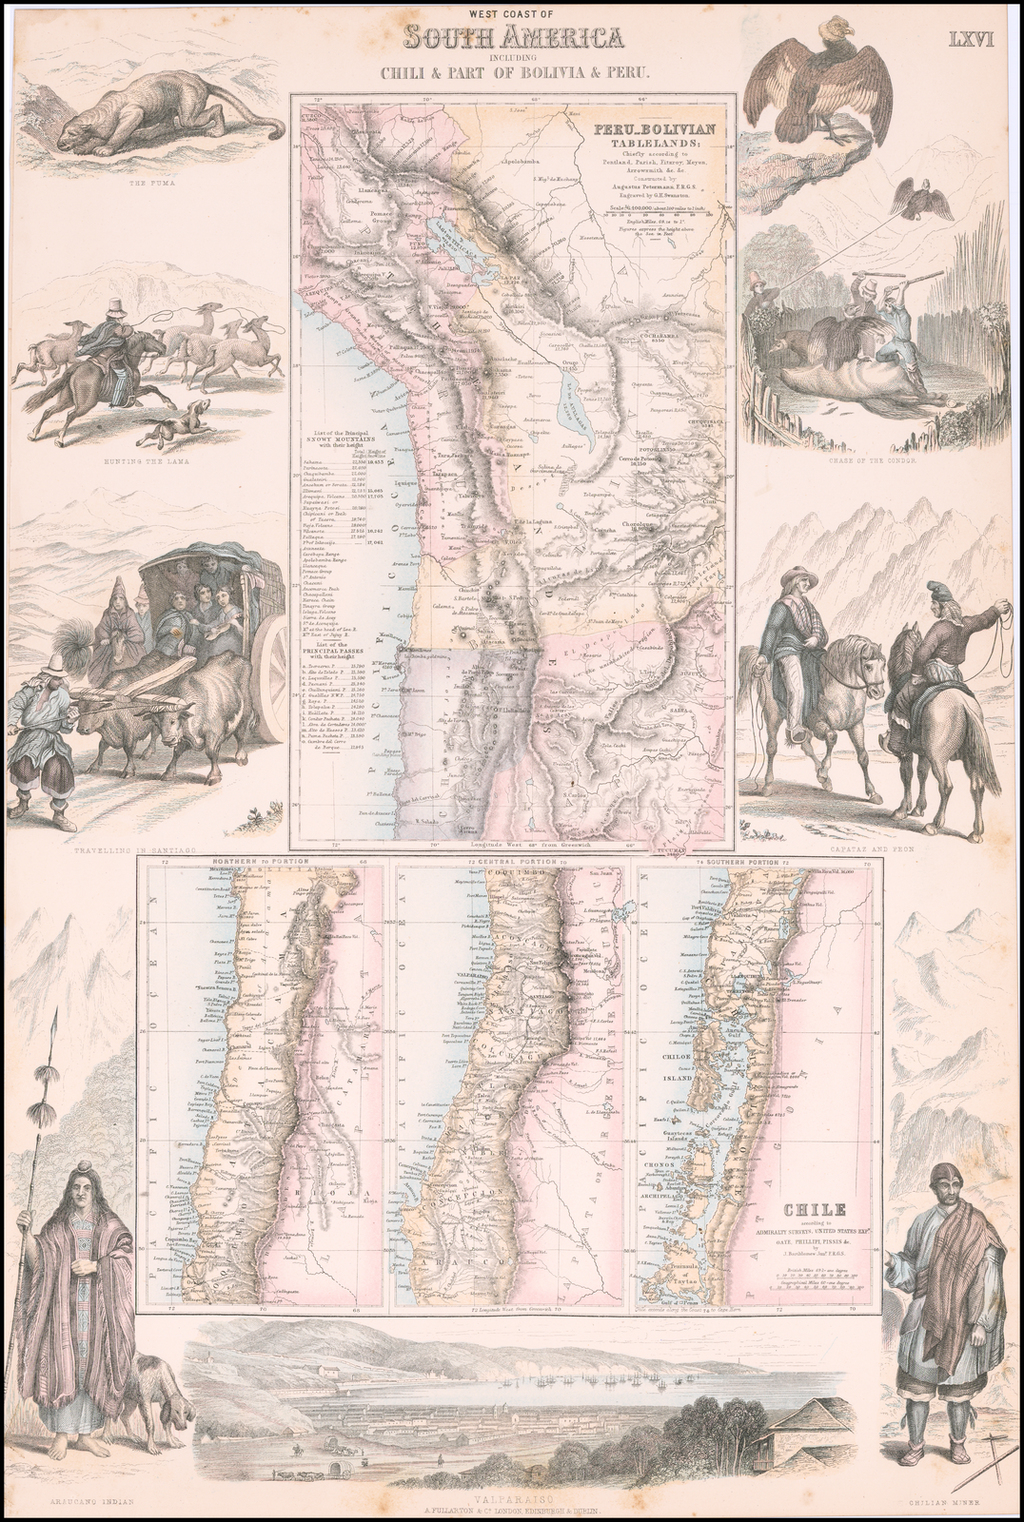 West Coast of South America Including Chili & Part of Bolivia & Peru By Archibald Fullarton & Co.